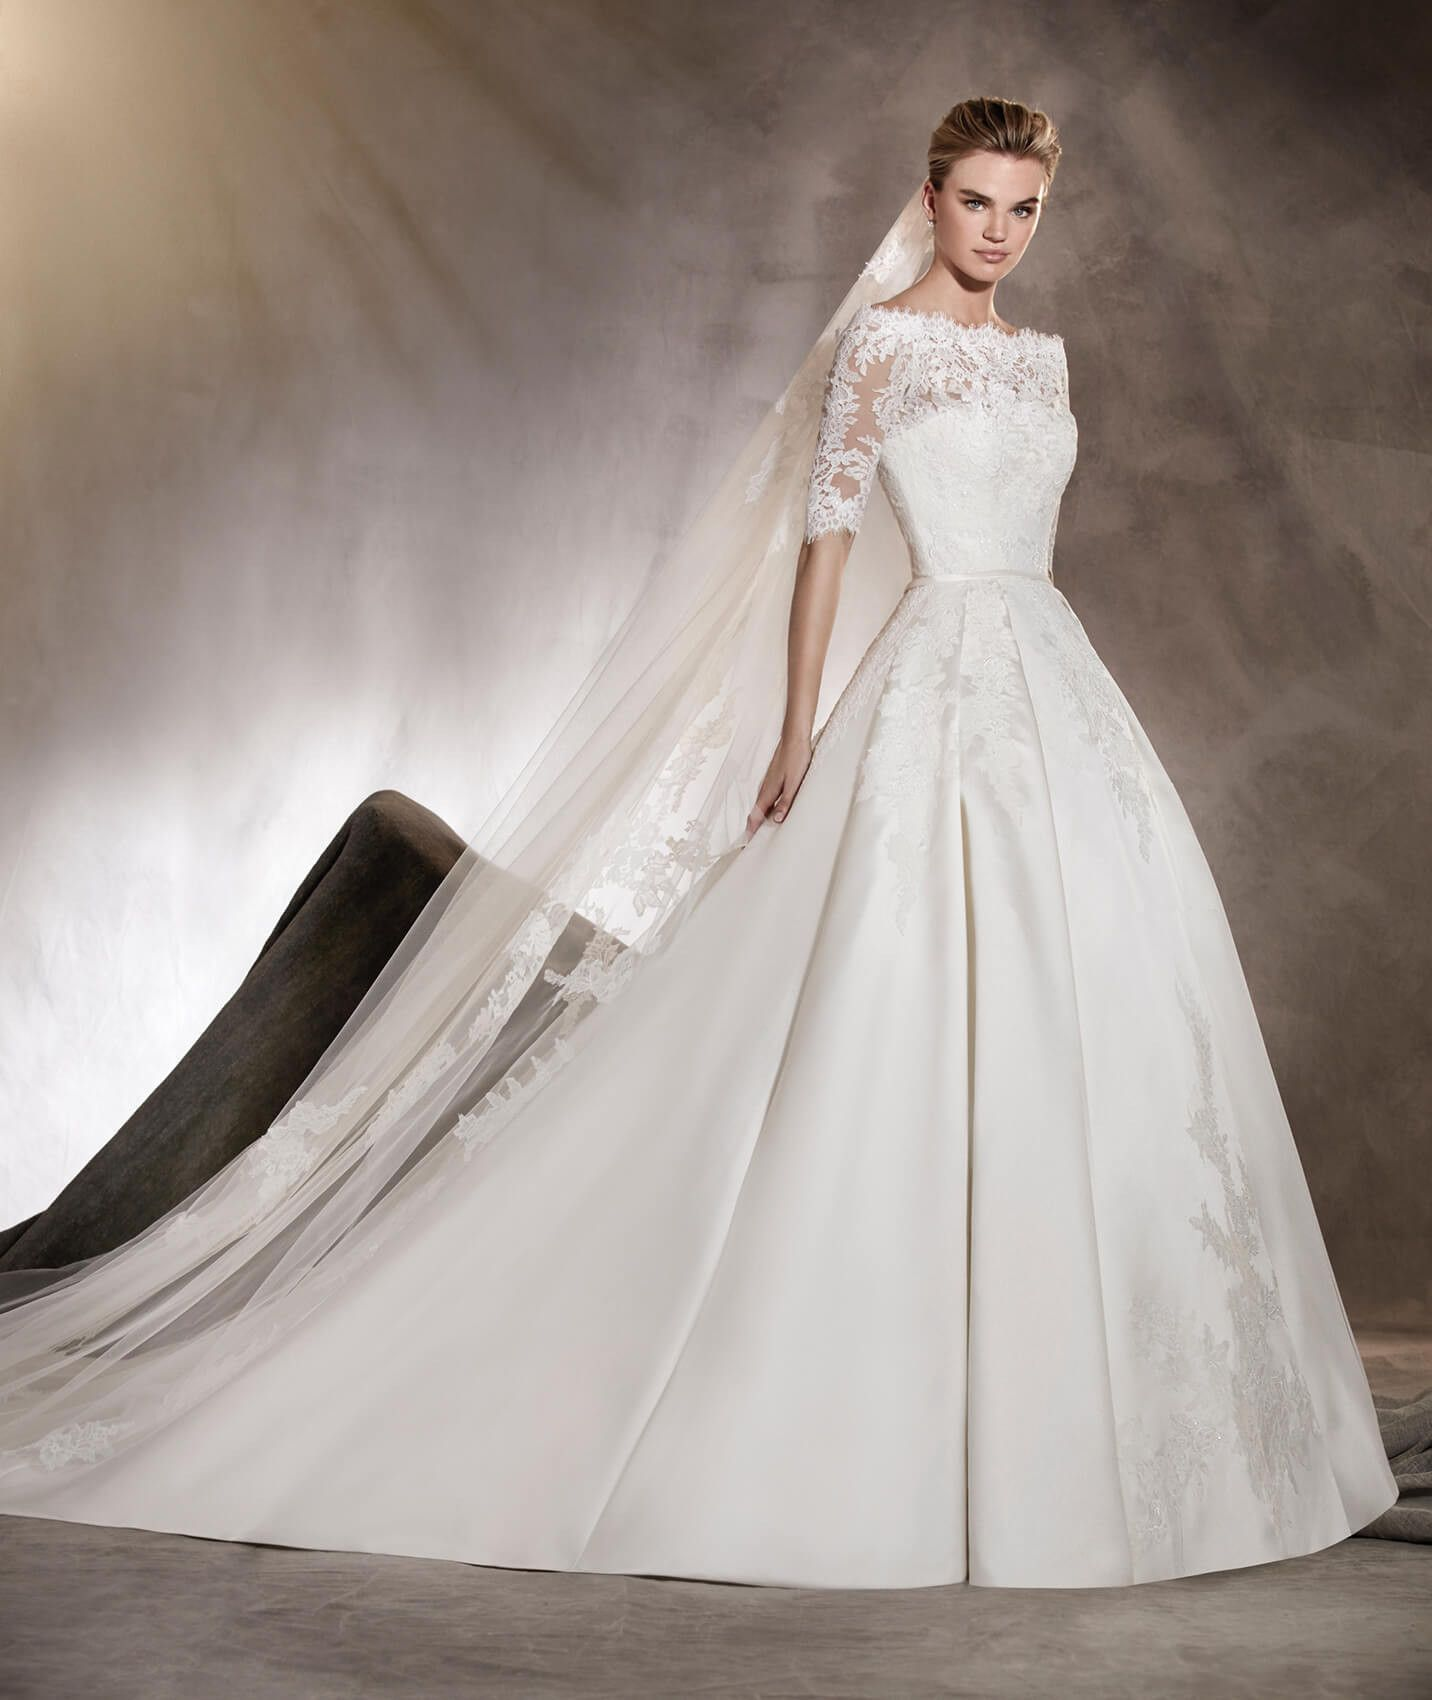 Albasari - Wedding dress in mikado, with an off-the-shoulder ...